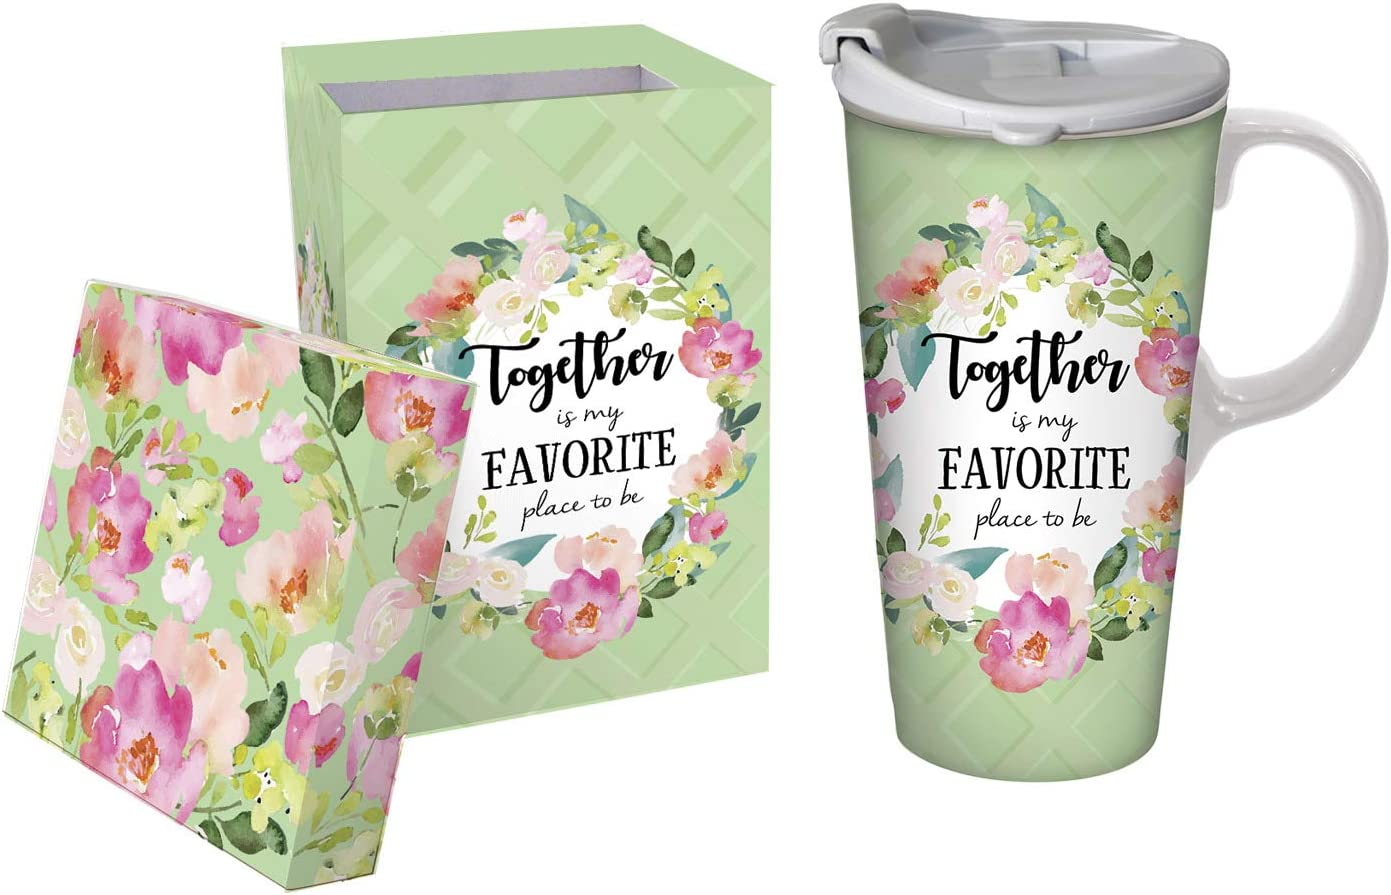 Cypress Home Ceramic Travel Cup, 17 Oz, With box, Together is My Favorite Place to Be